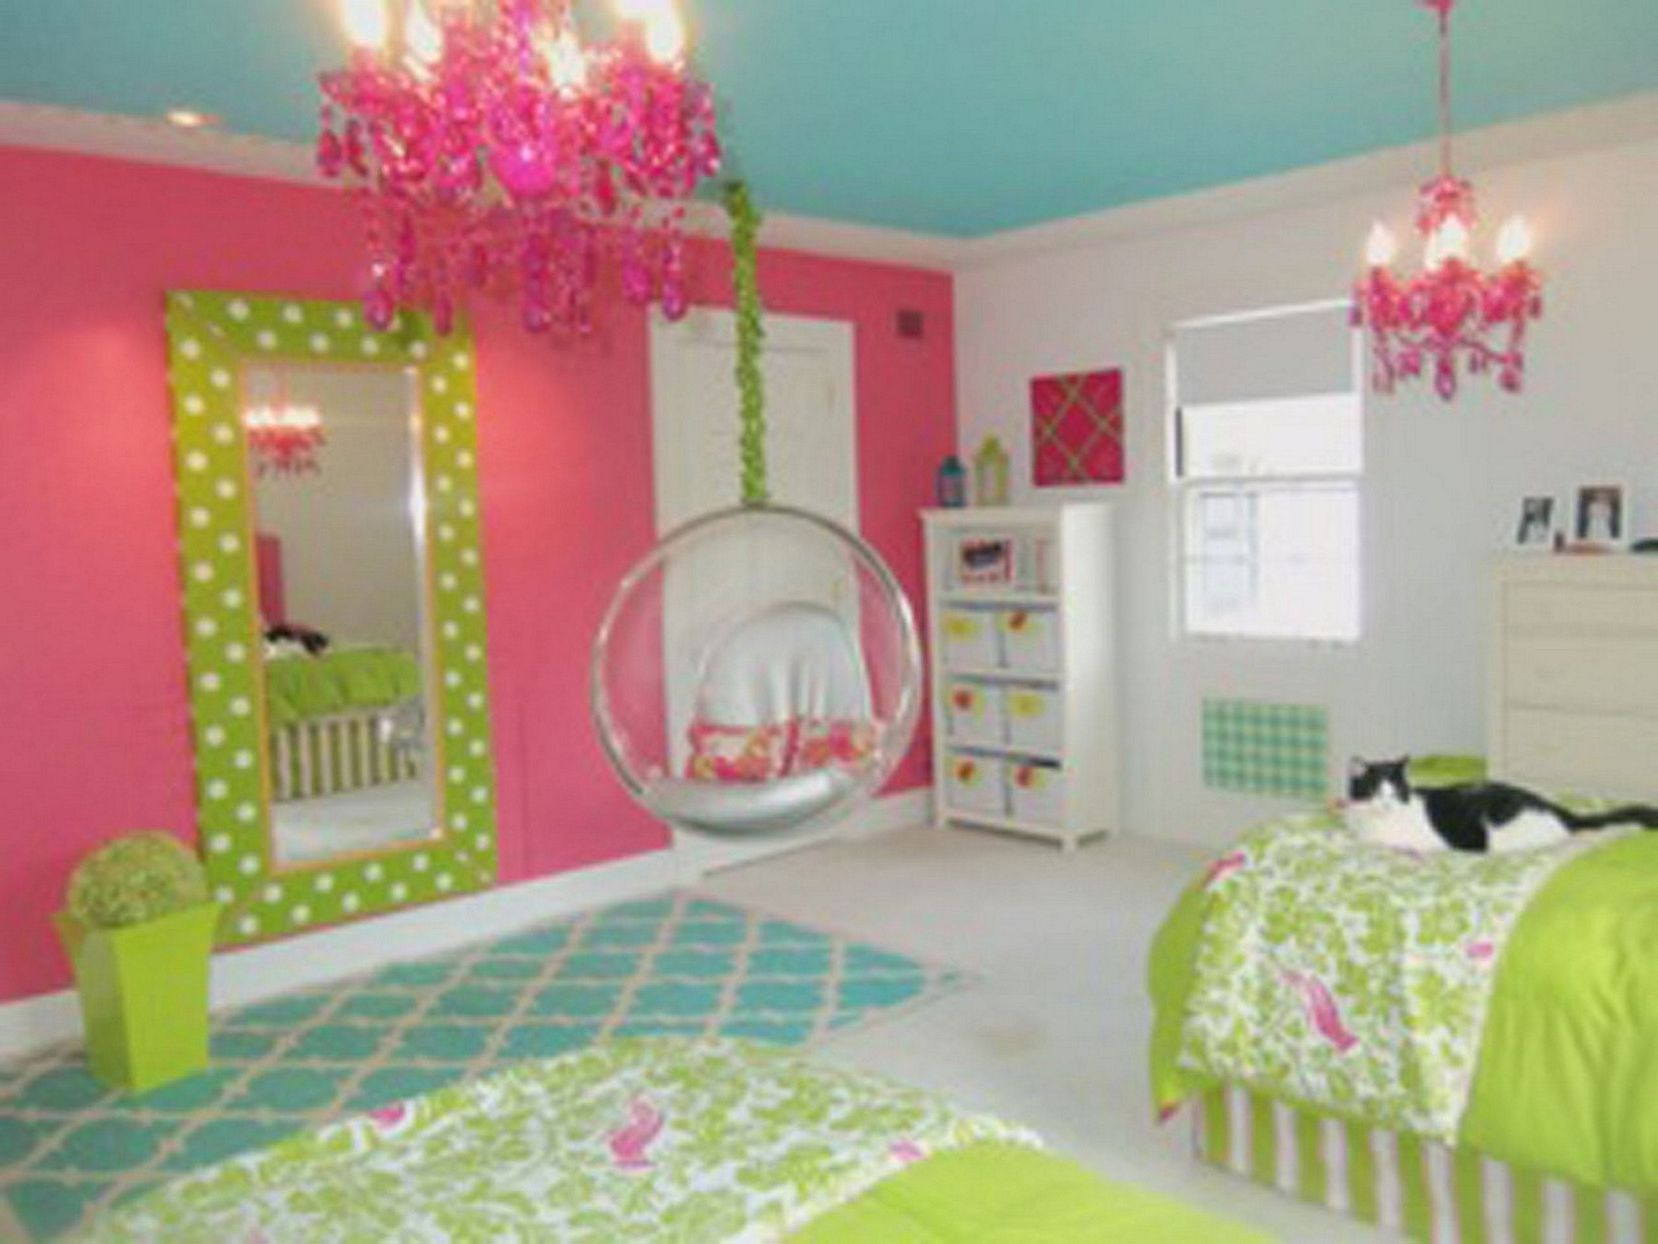 Teenage Room Decor Ideas Teens Room Girls Bedroom Ideas Teenage Girl Diy Decor For Pictures